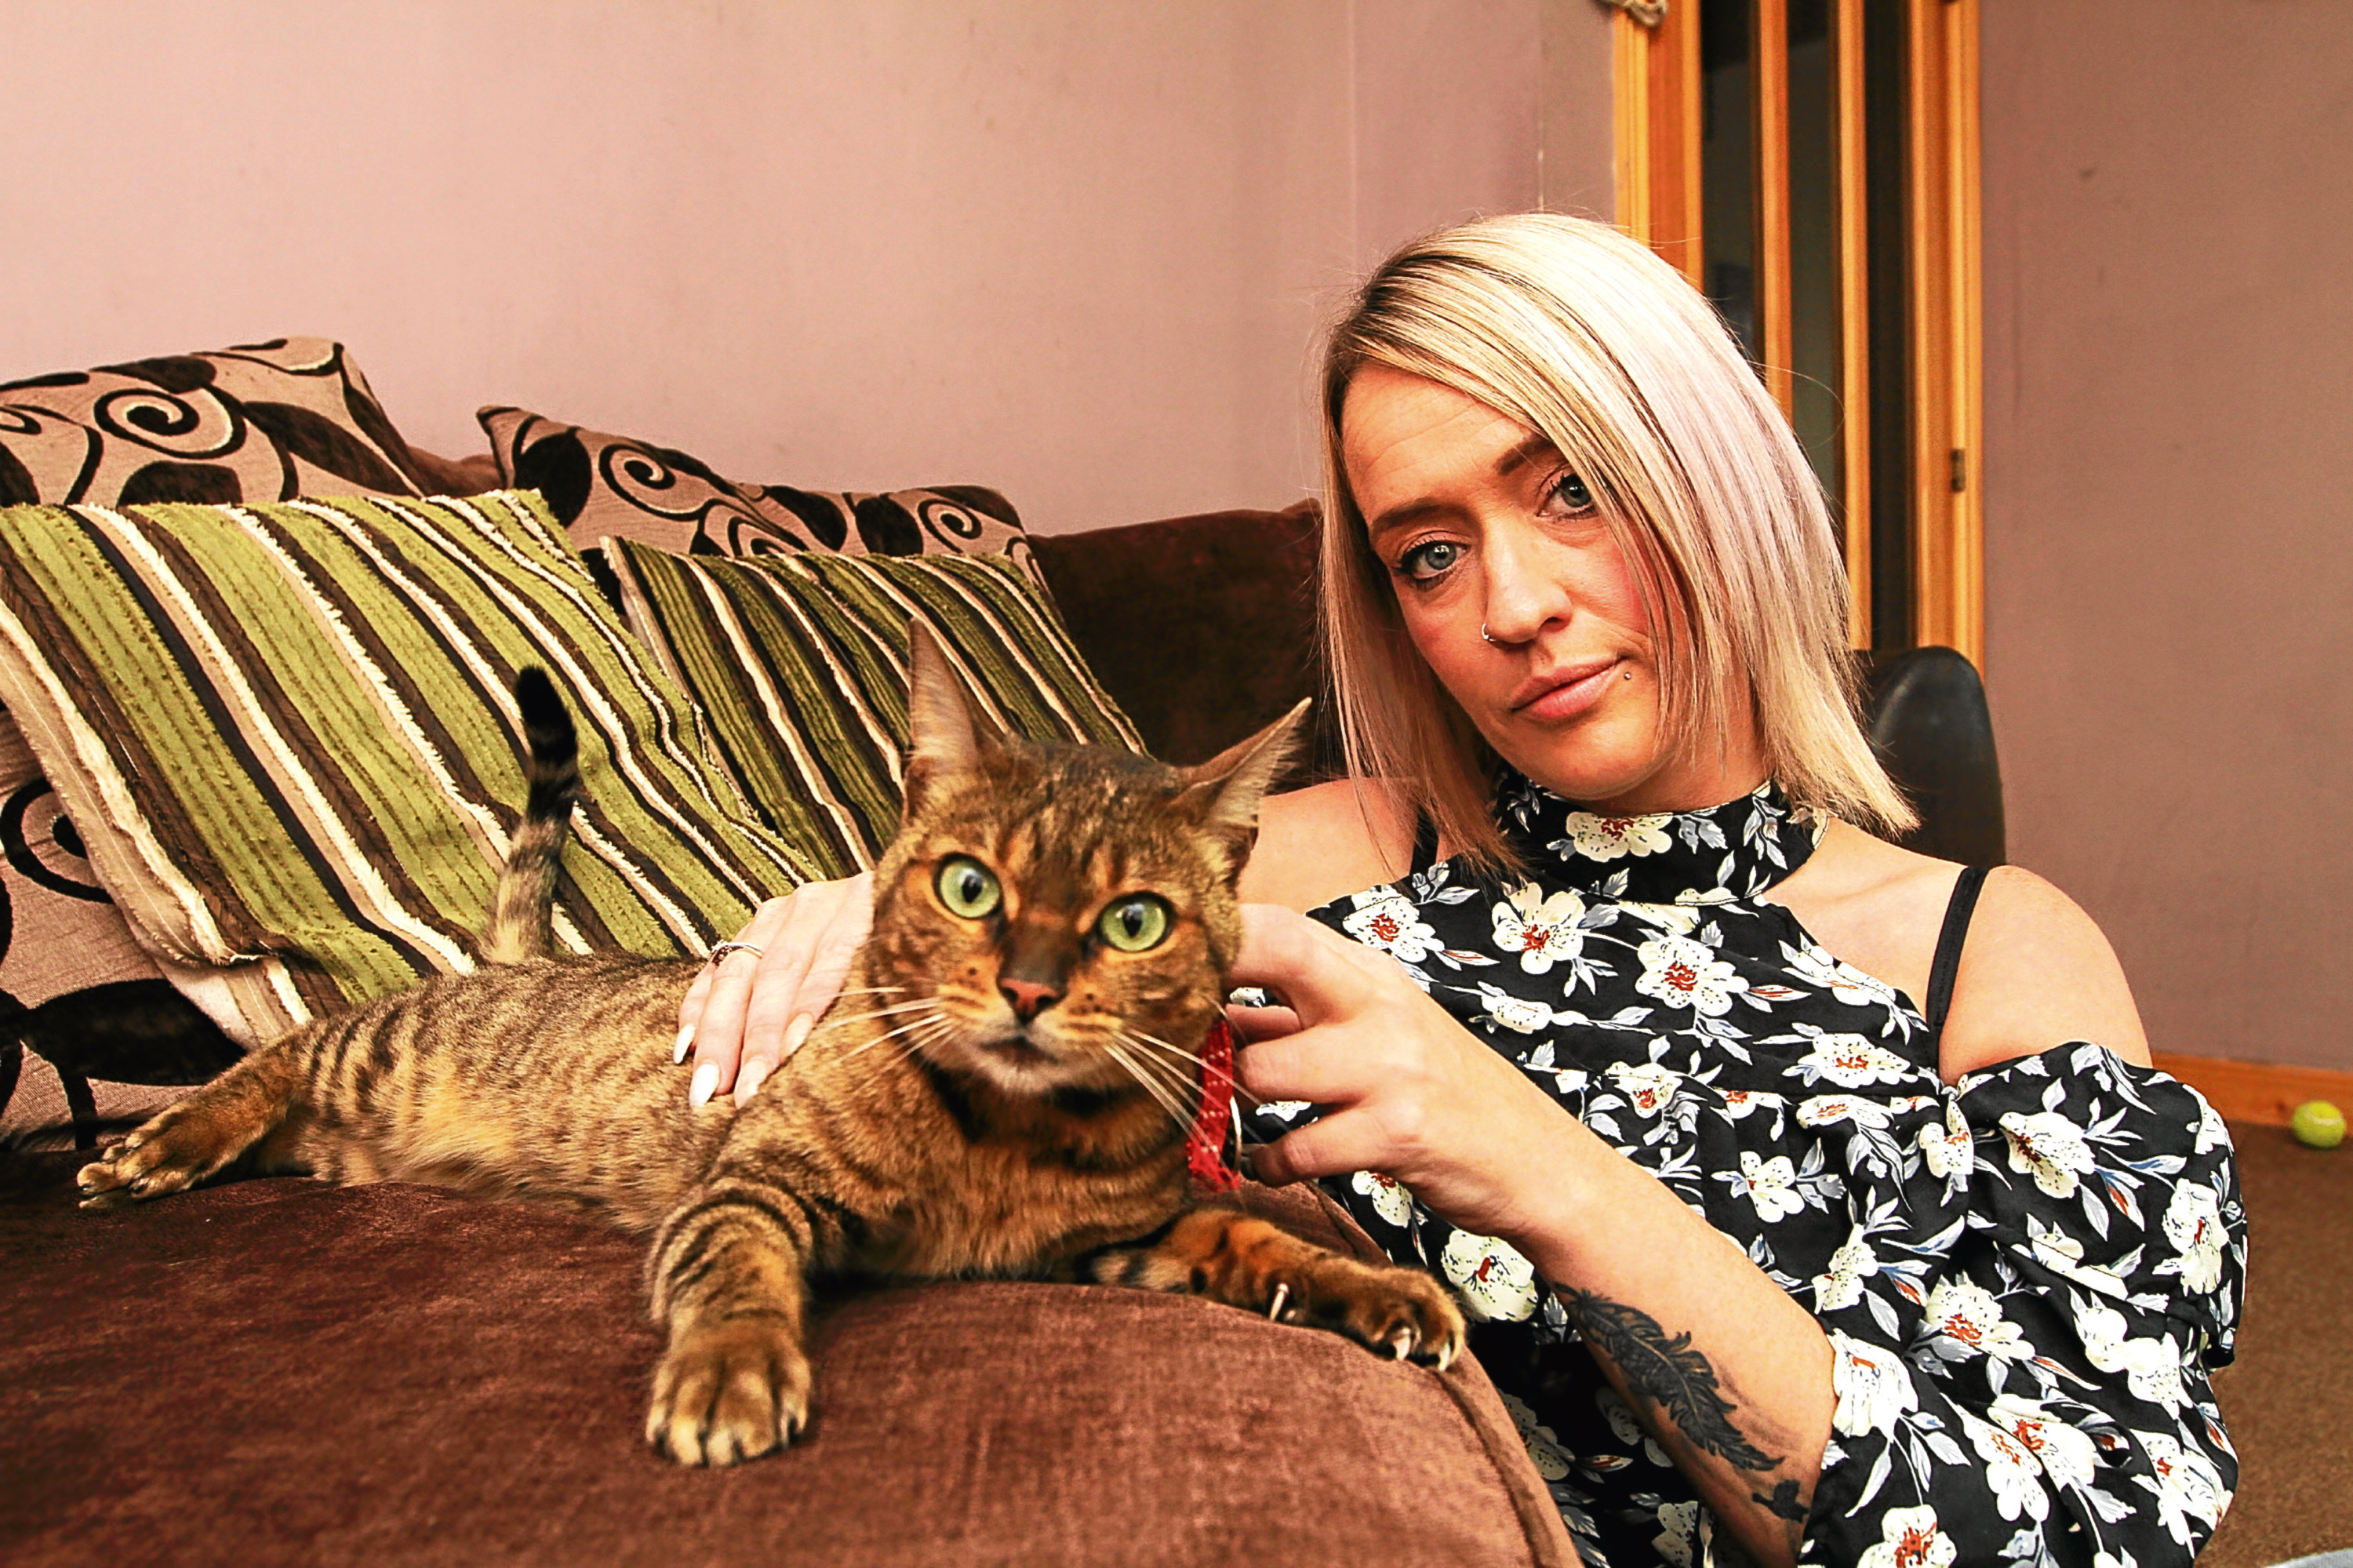 Carrie-Ann has hit out at the yobs who attacked her cat, Puss in Boots.